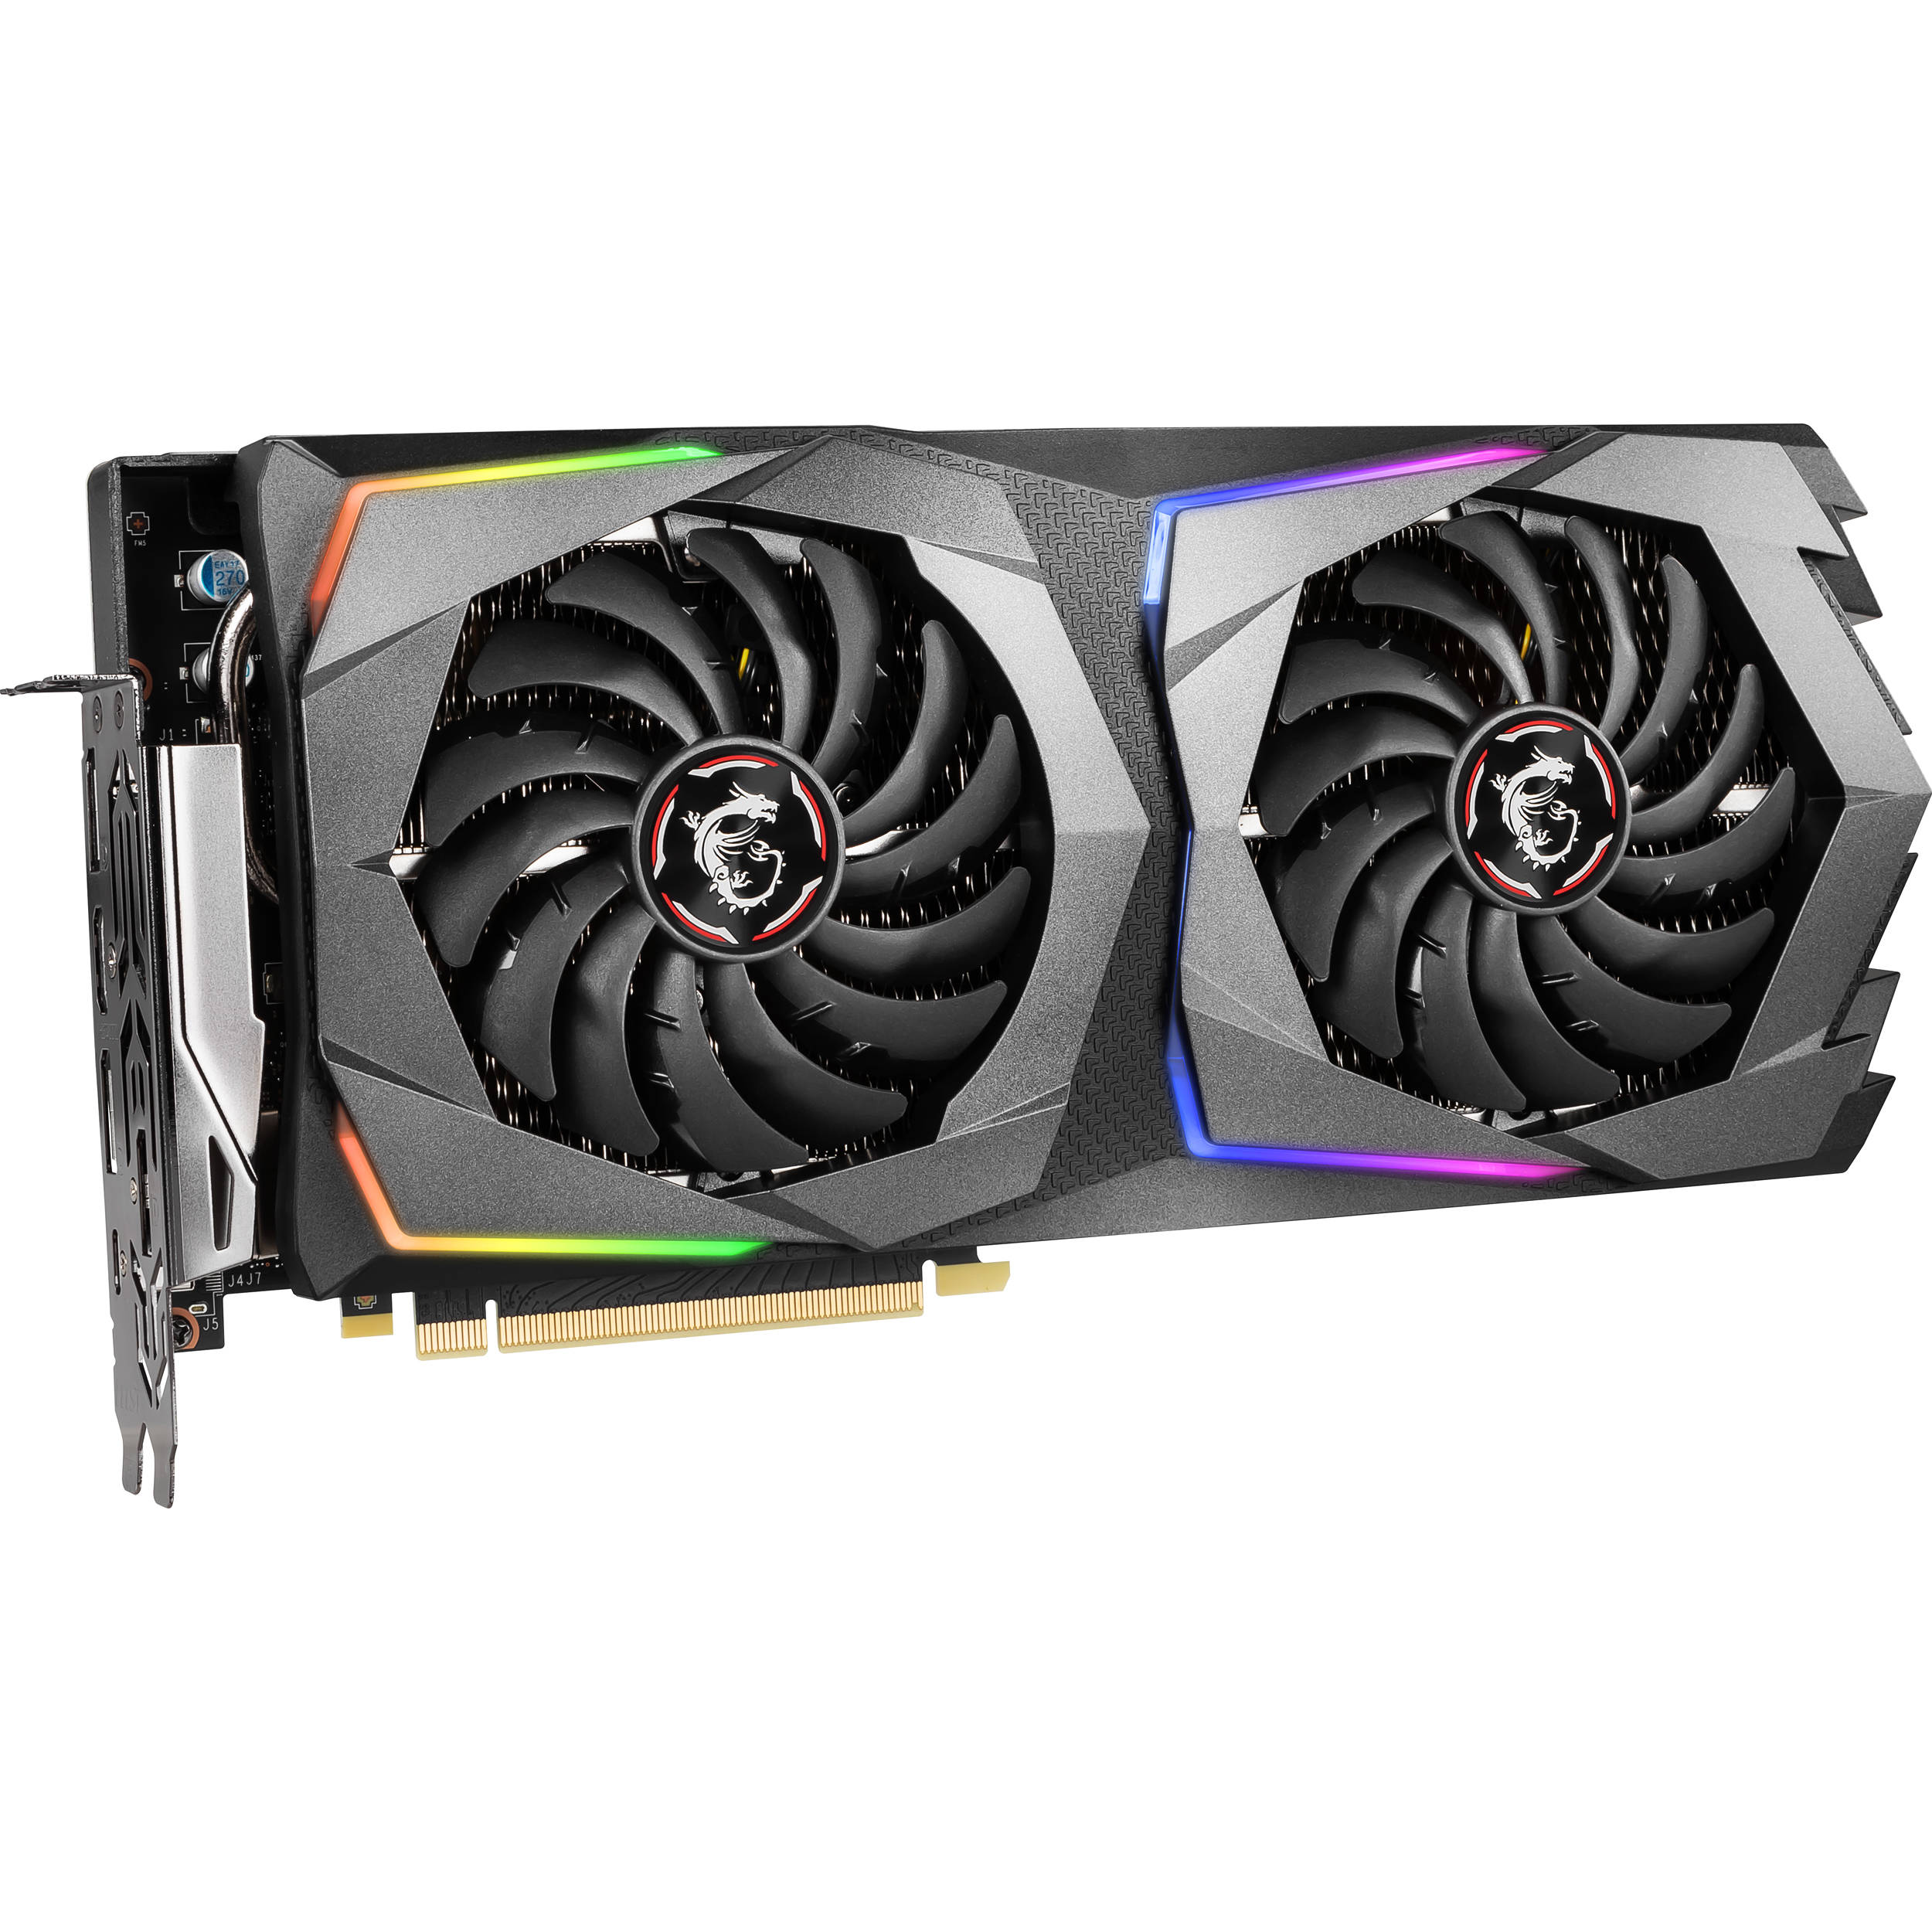 MSI GeForce RTX 2070 GAMING Graphics Card